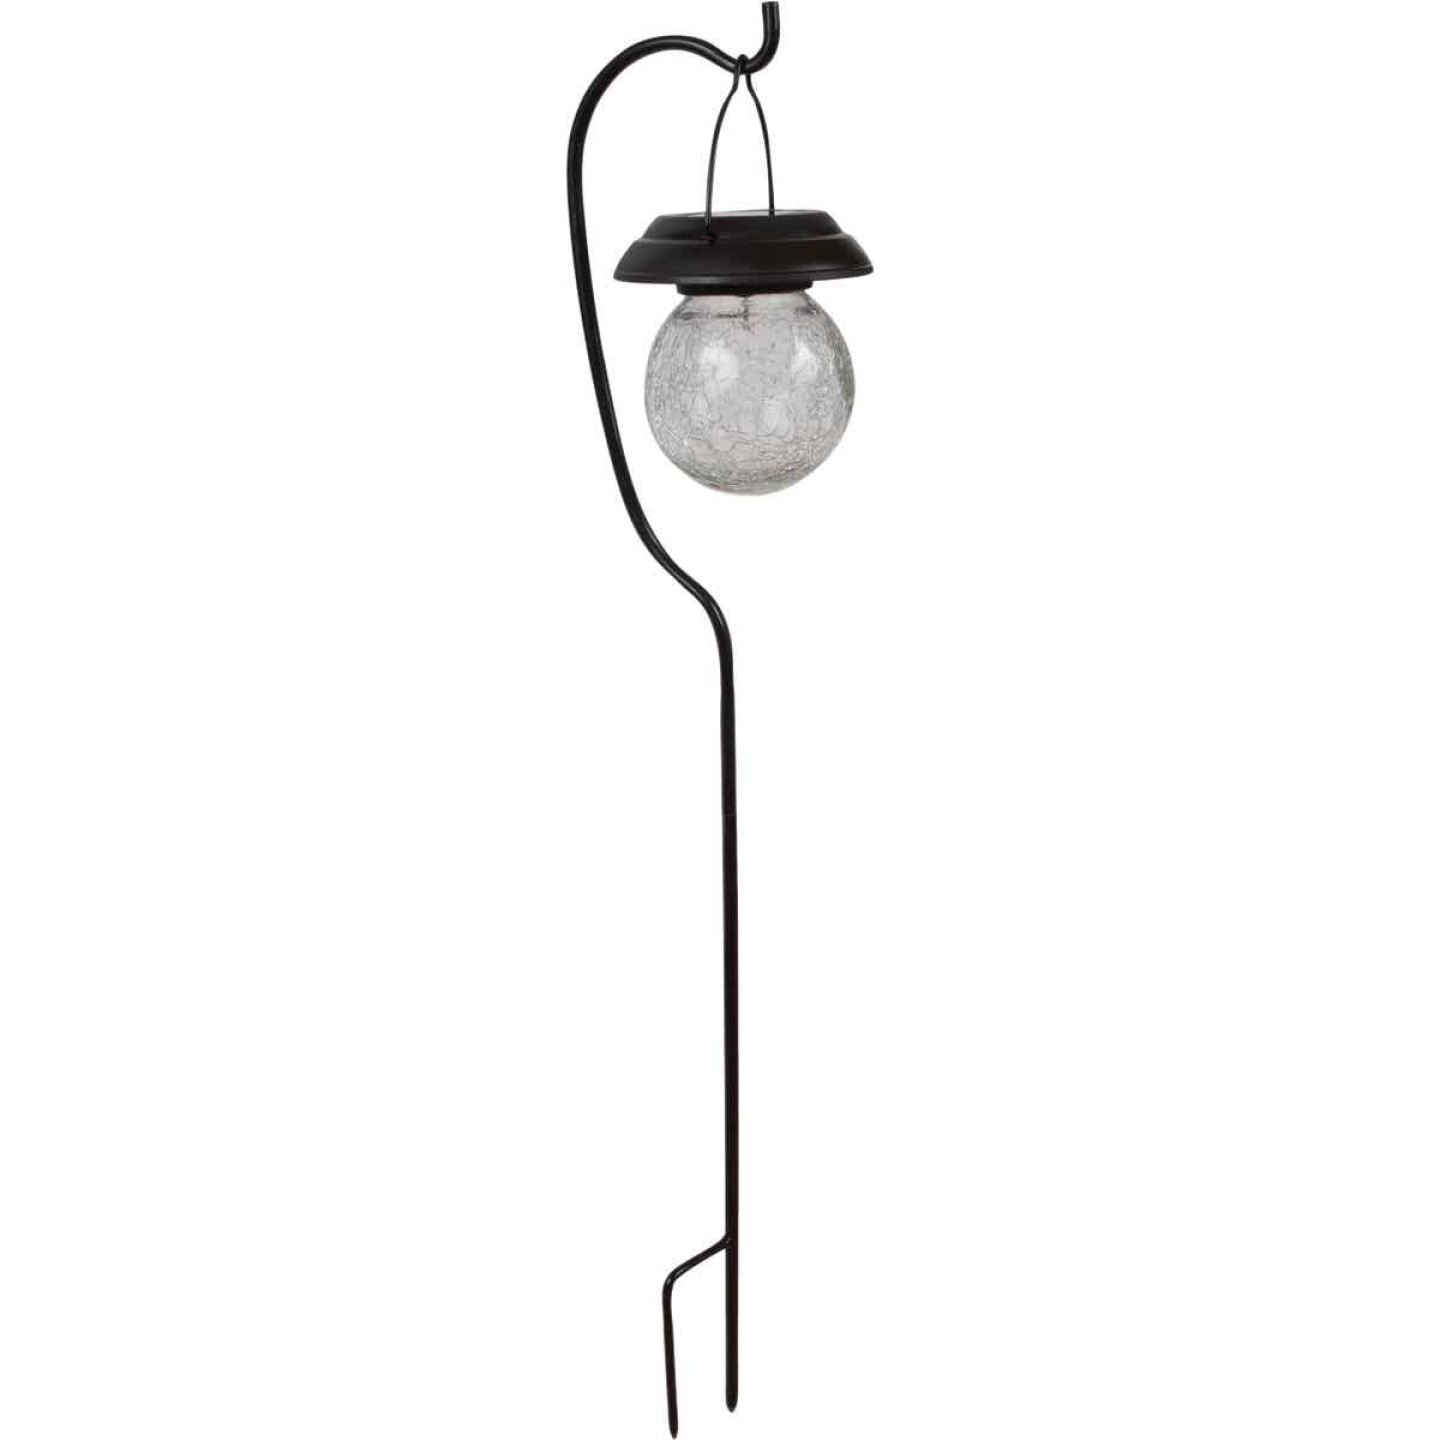 Fusion Black Stainless Steel Shepherd's Hook Hanging Crackle Ball Solar Path Light Image 2